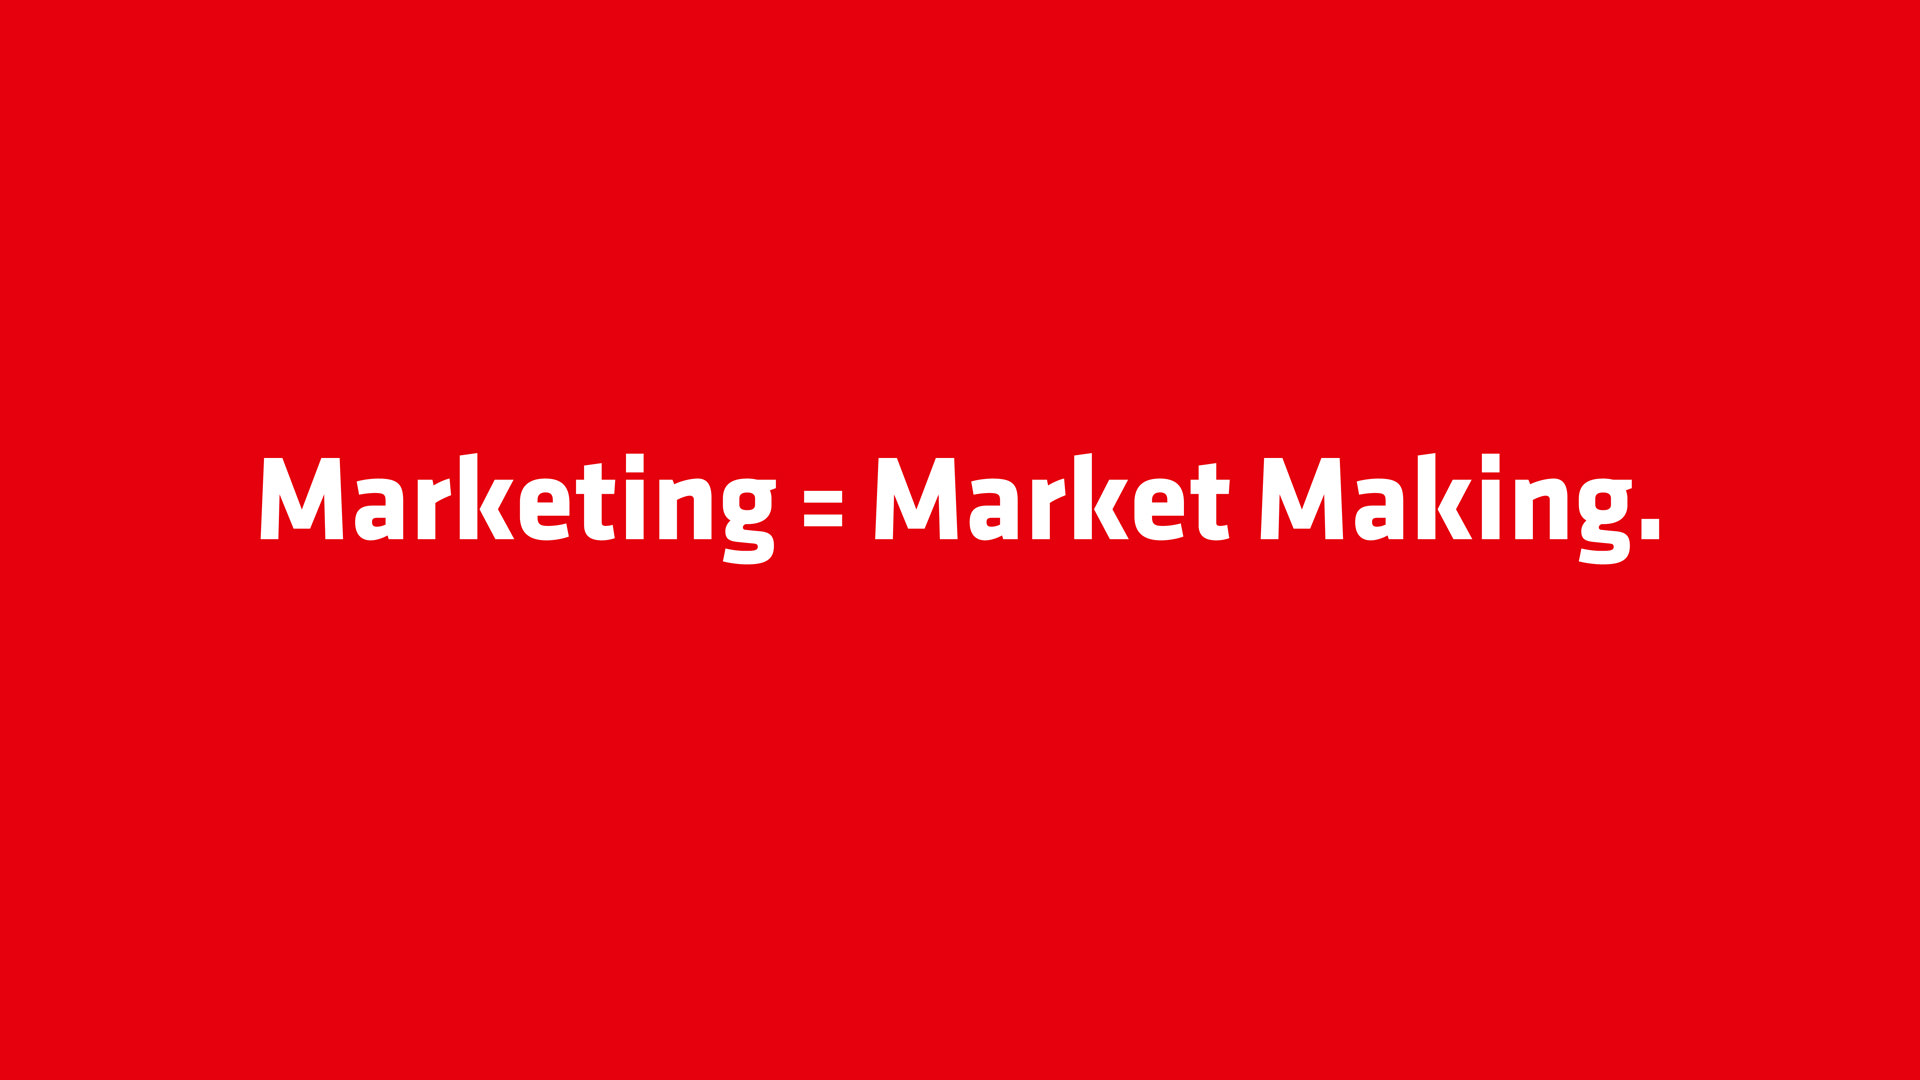 Marketing = Market Making